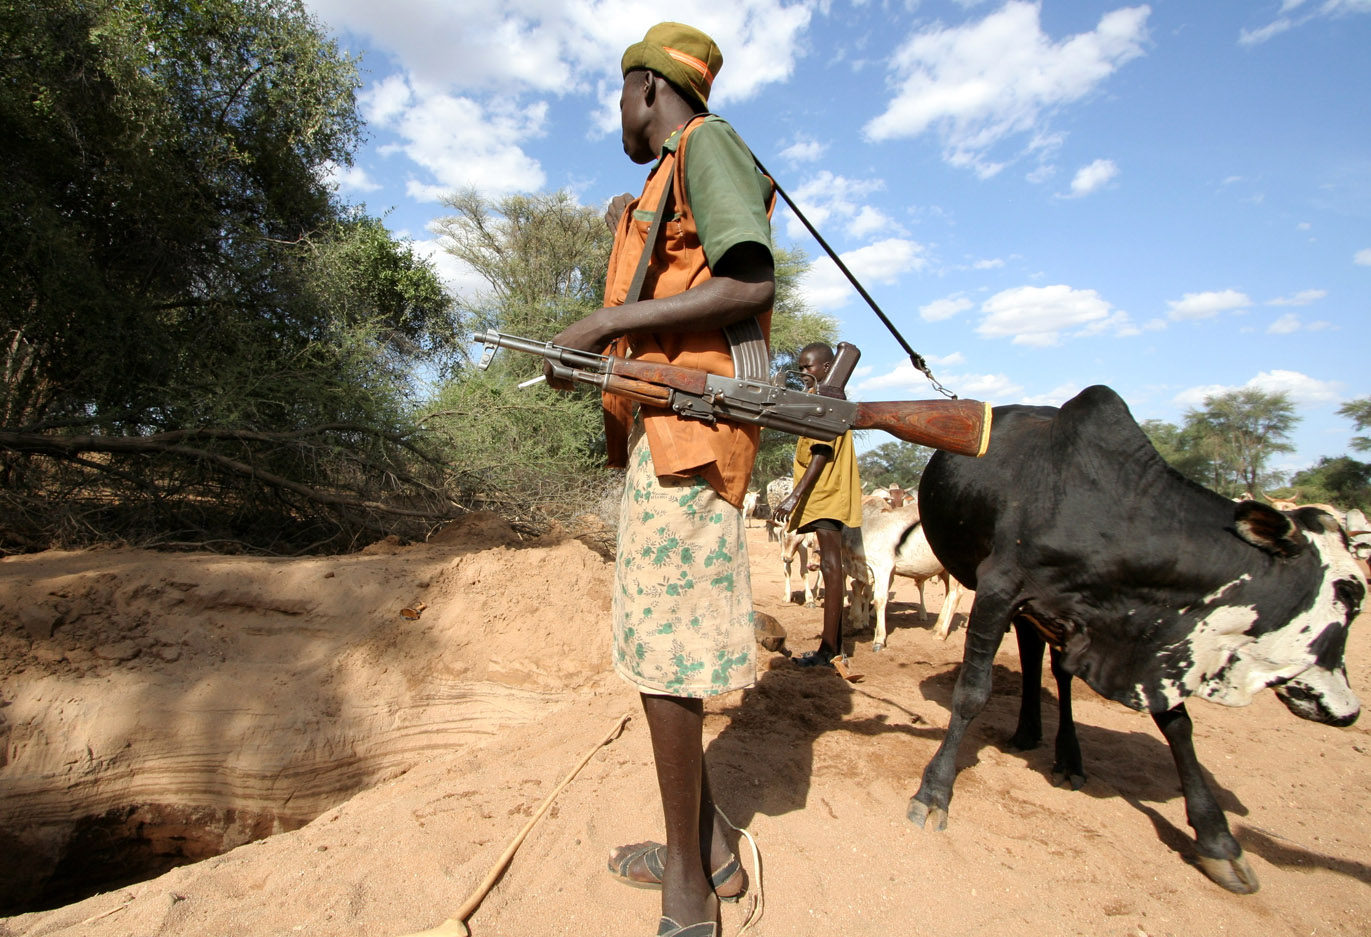 A young Turkana man armed with an AK-47 rifle, Oropoi, northwestern Kenya, 18 February 2007. Conflicts involving pastoralists associated with resource competition, cattle rustling and arms are widespread and of increasing concern in the region.